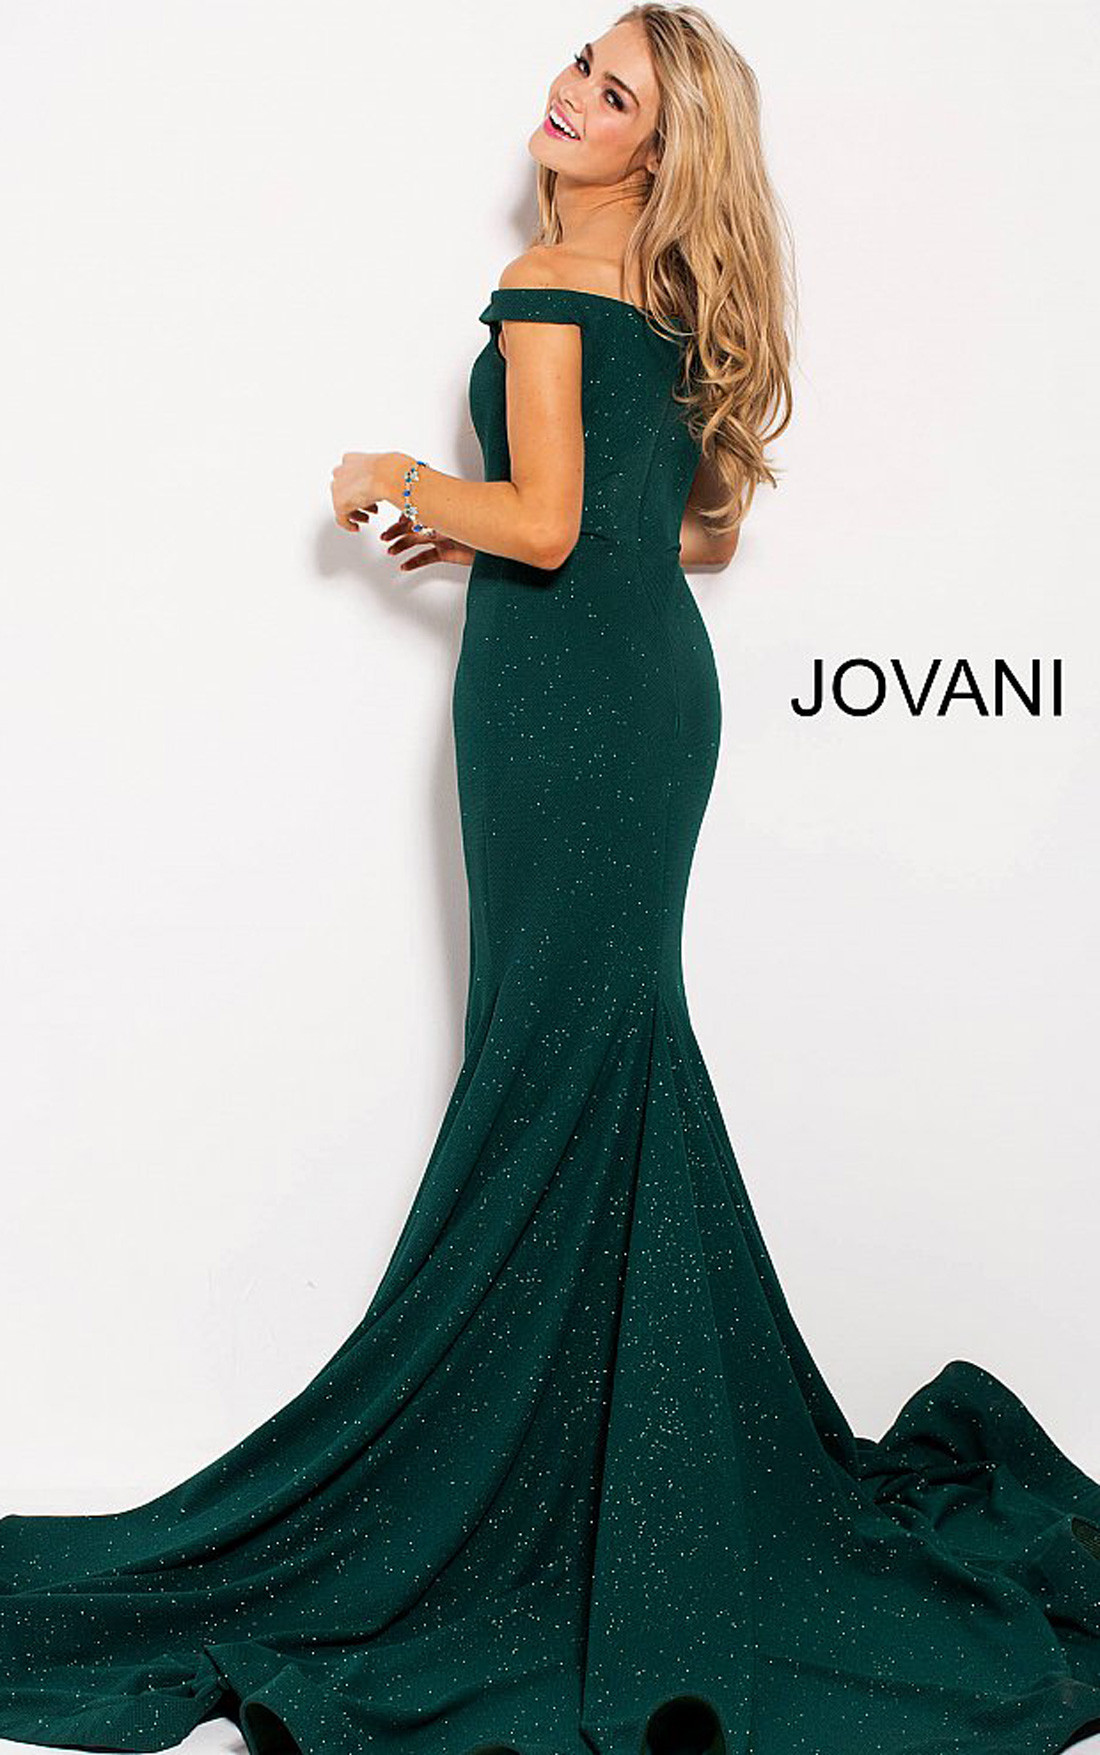 Jovani Dresses  Womens Hunter Glitter Off the Shoulder Sweetheart Neck Dress  Womens Dresses